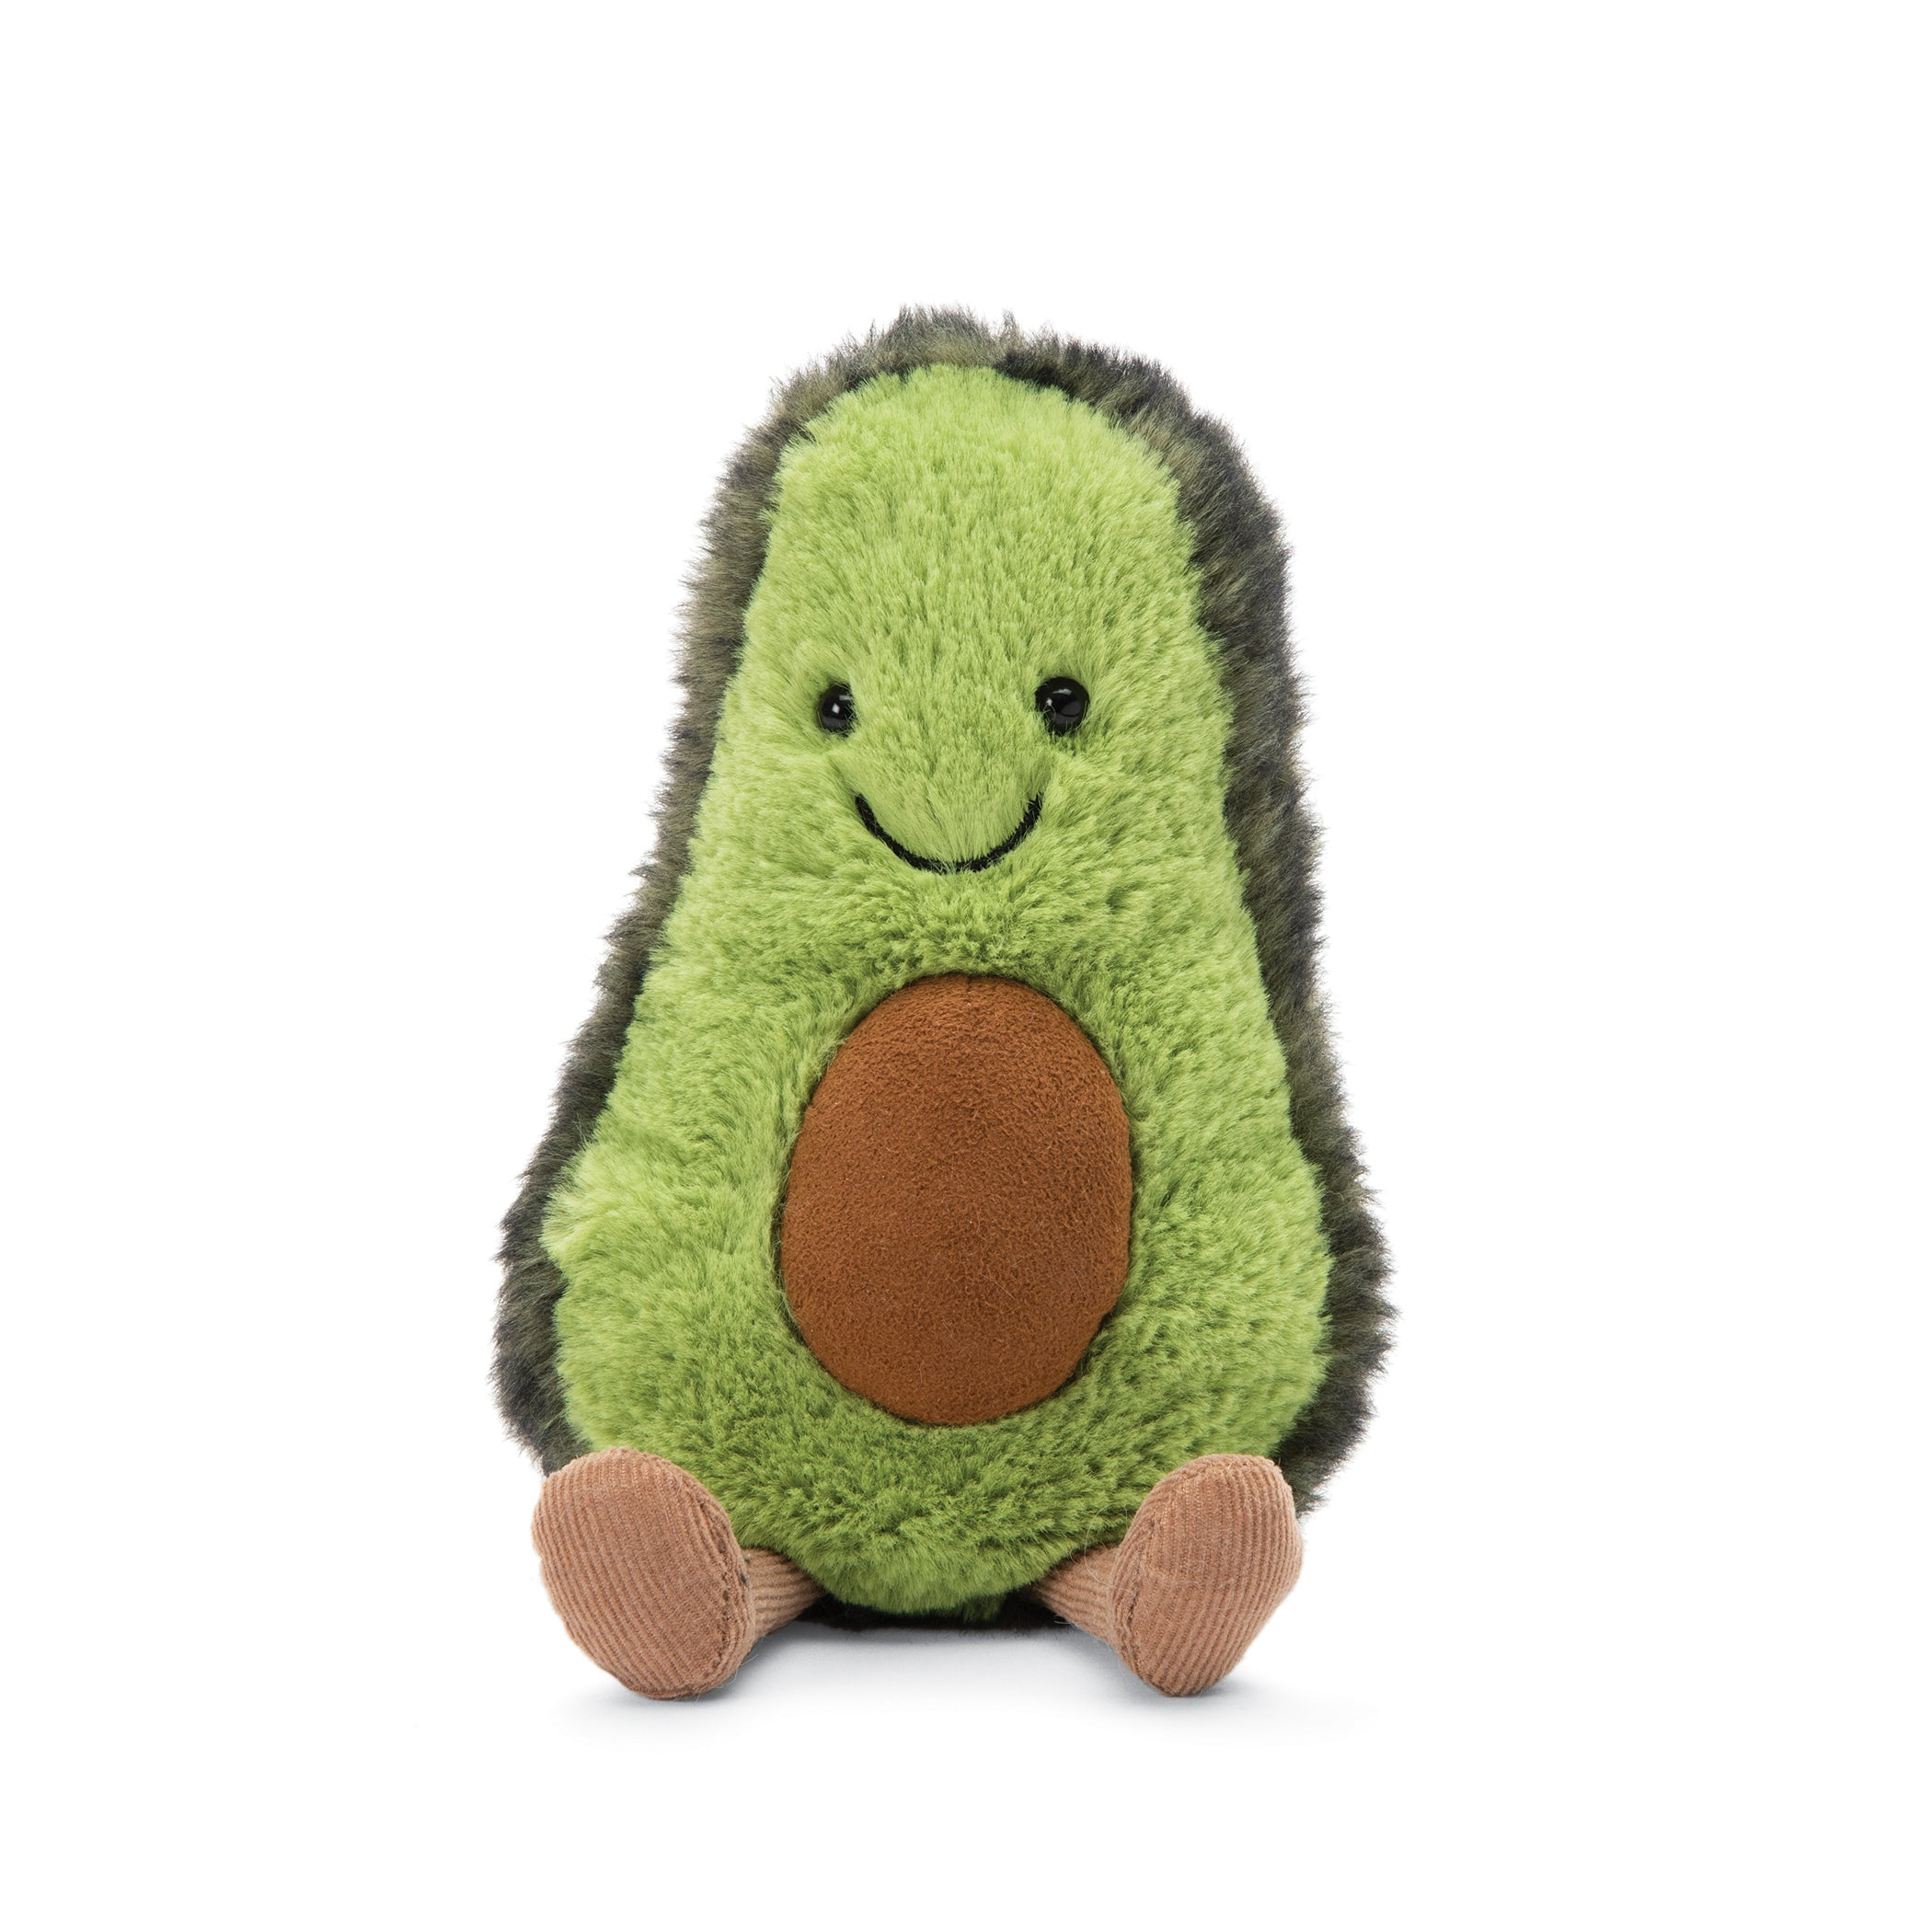 Amuseables Avocado Small